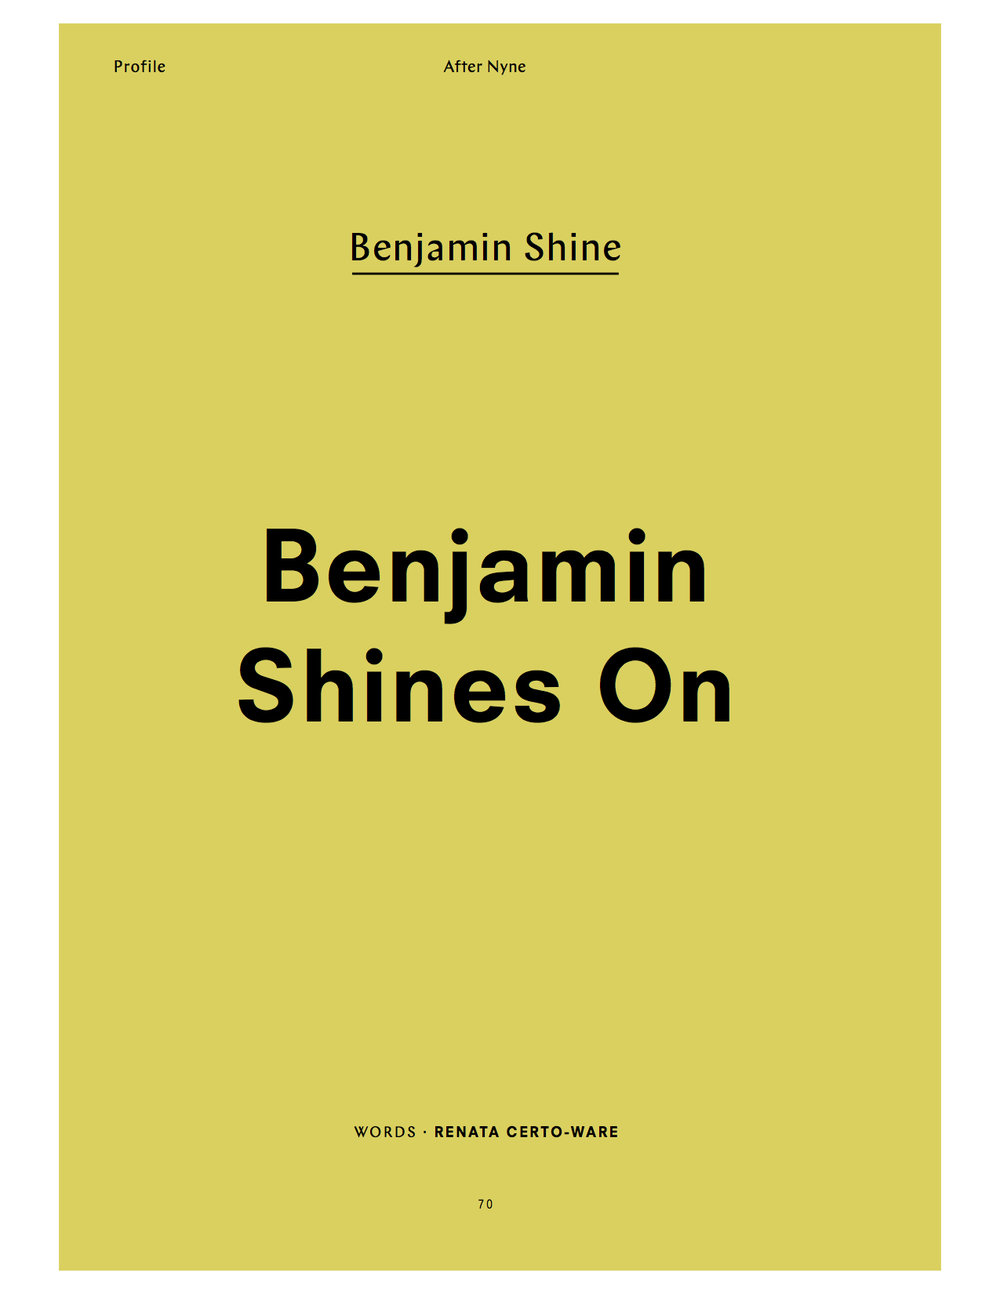 After Nyne Issue 17 Benjamin Shine interview after nyne .jpg